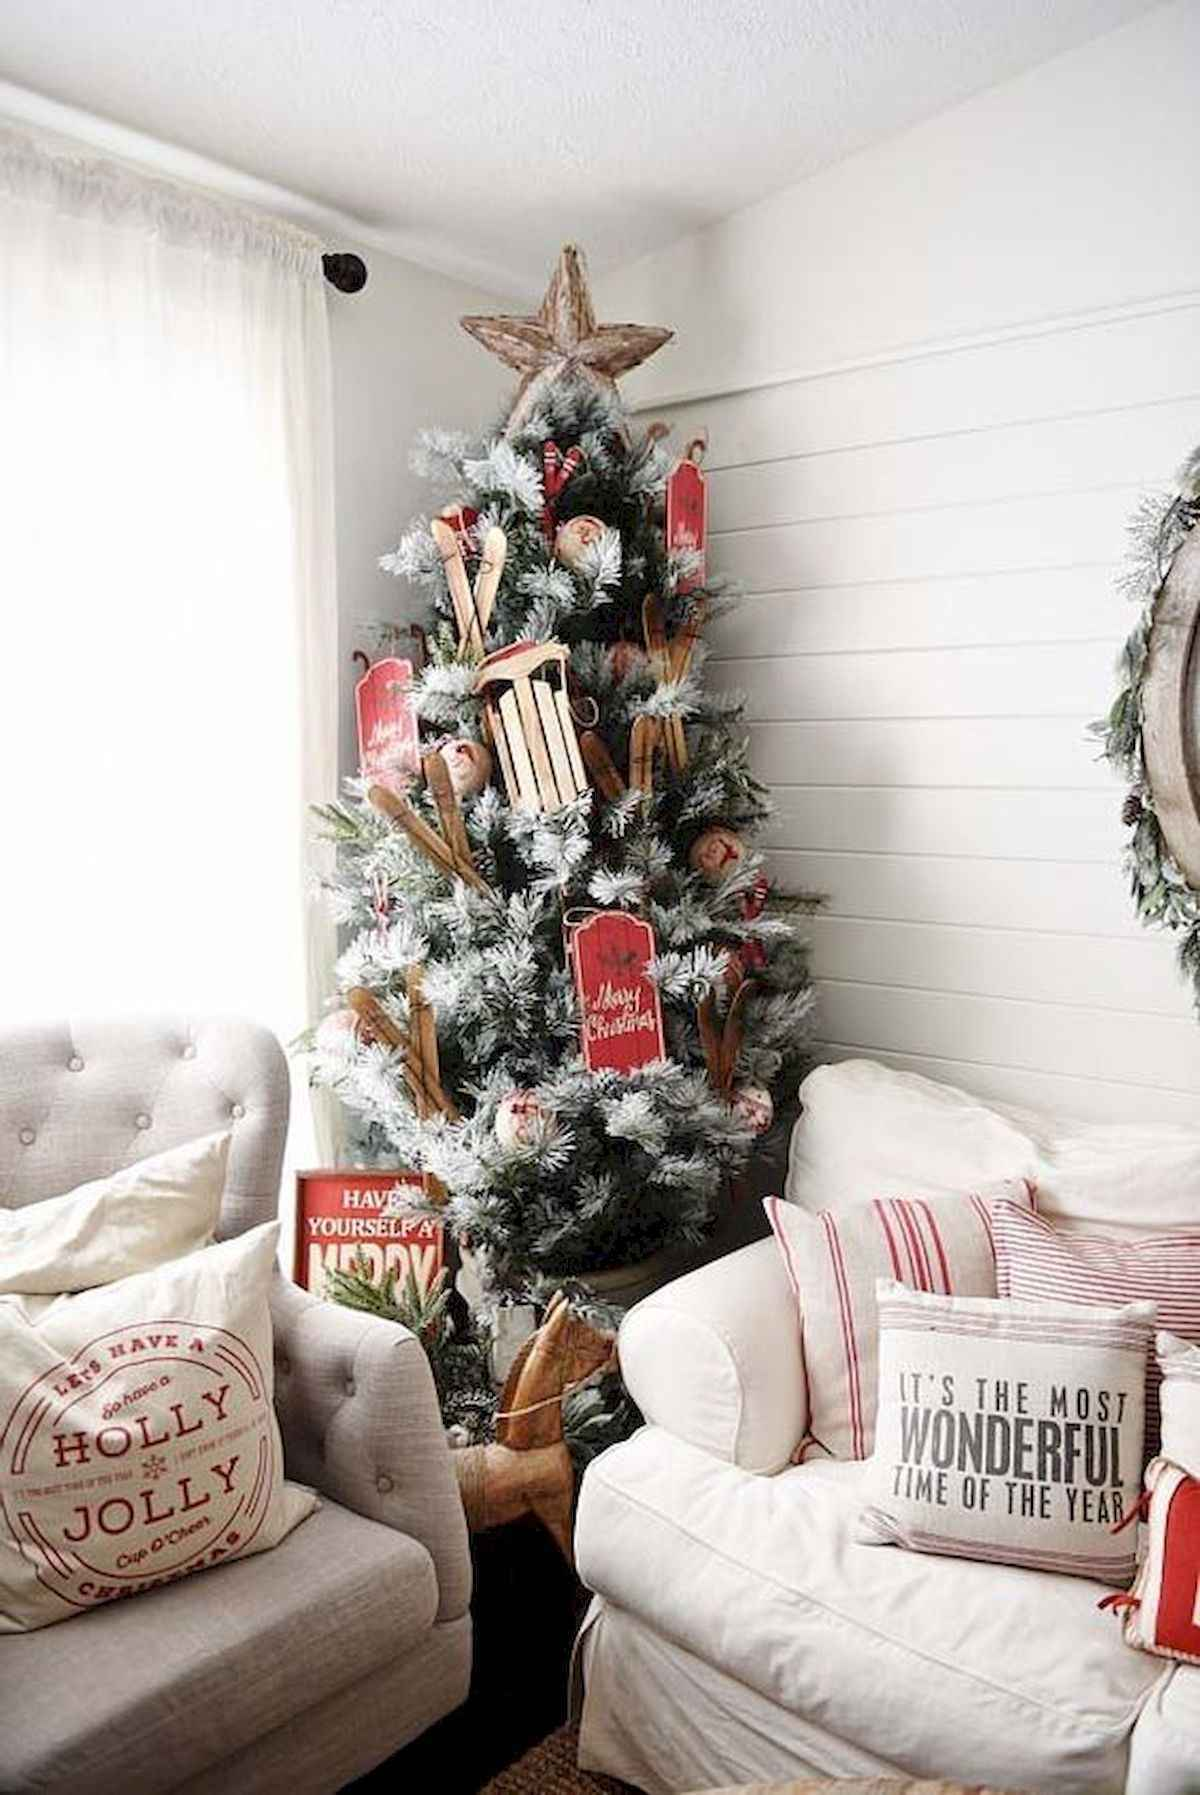 60 awesome christmas tree decorations ideas (11)